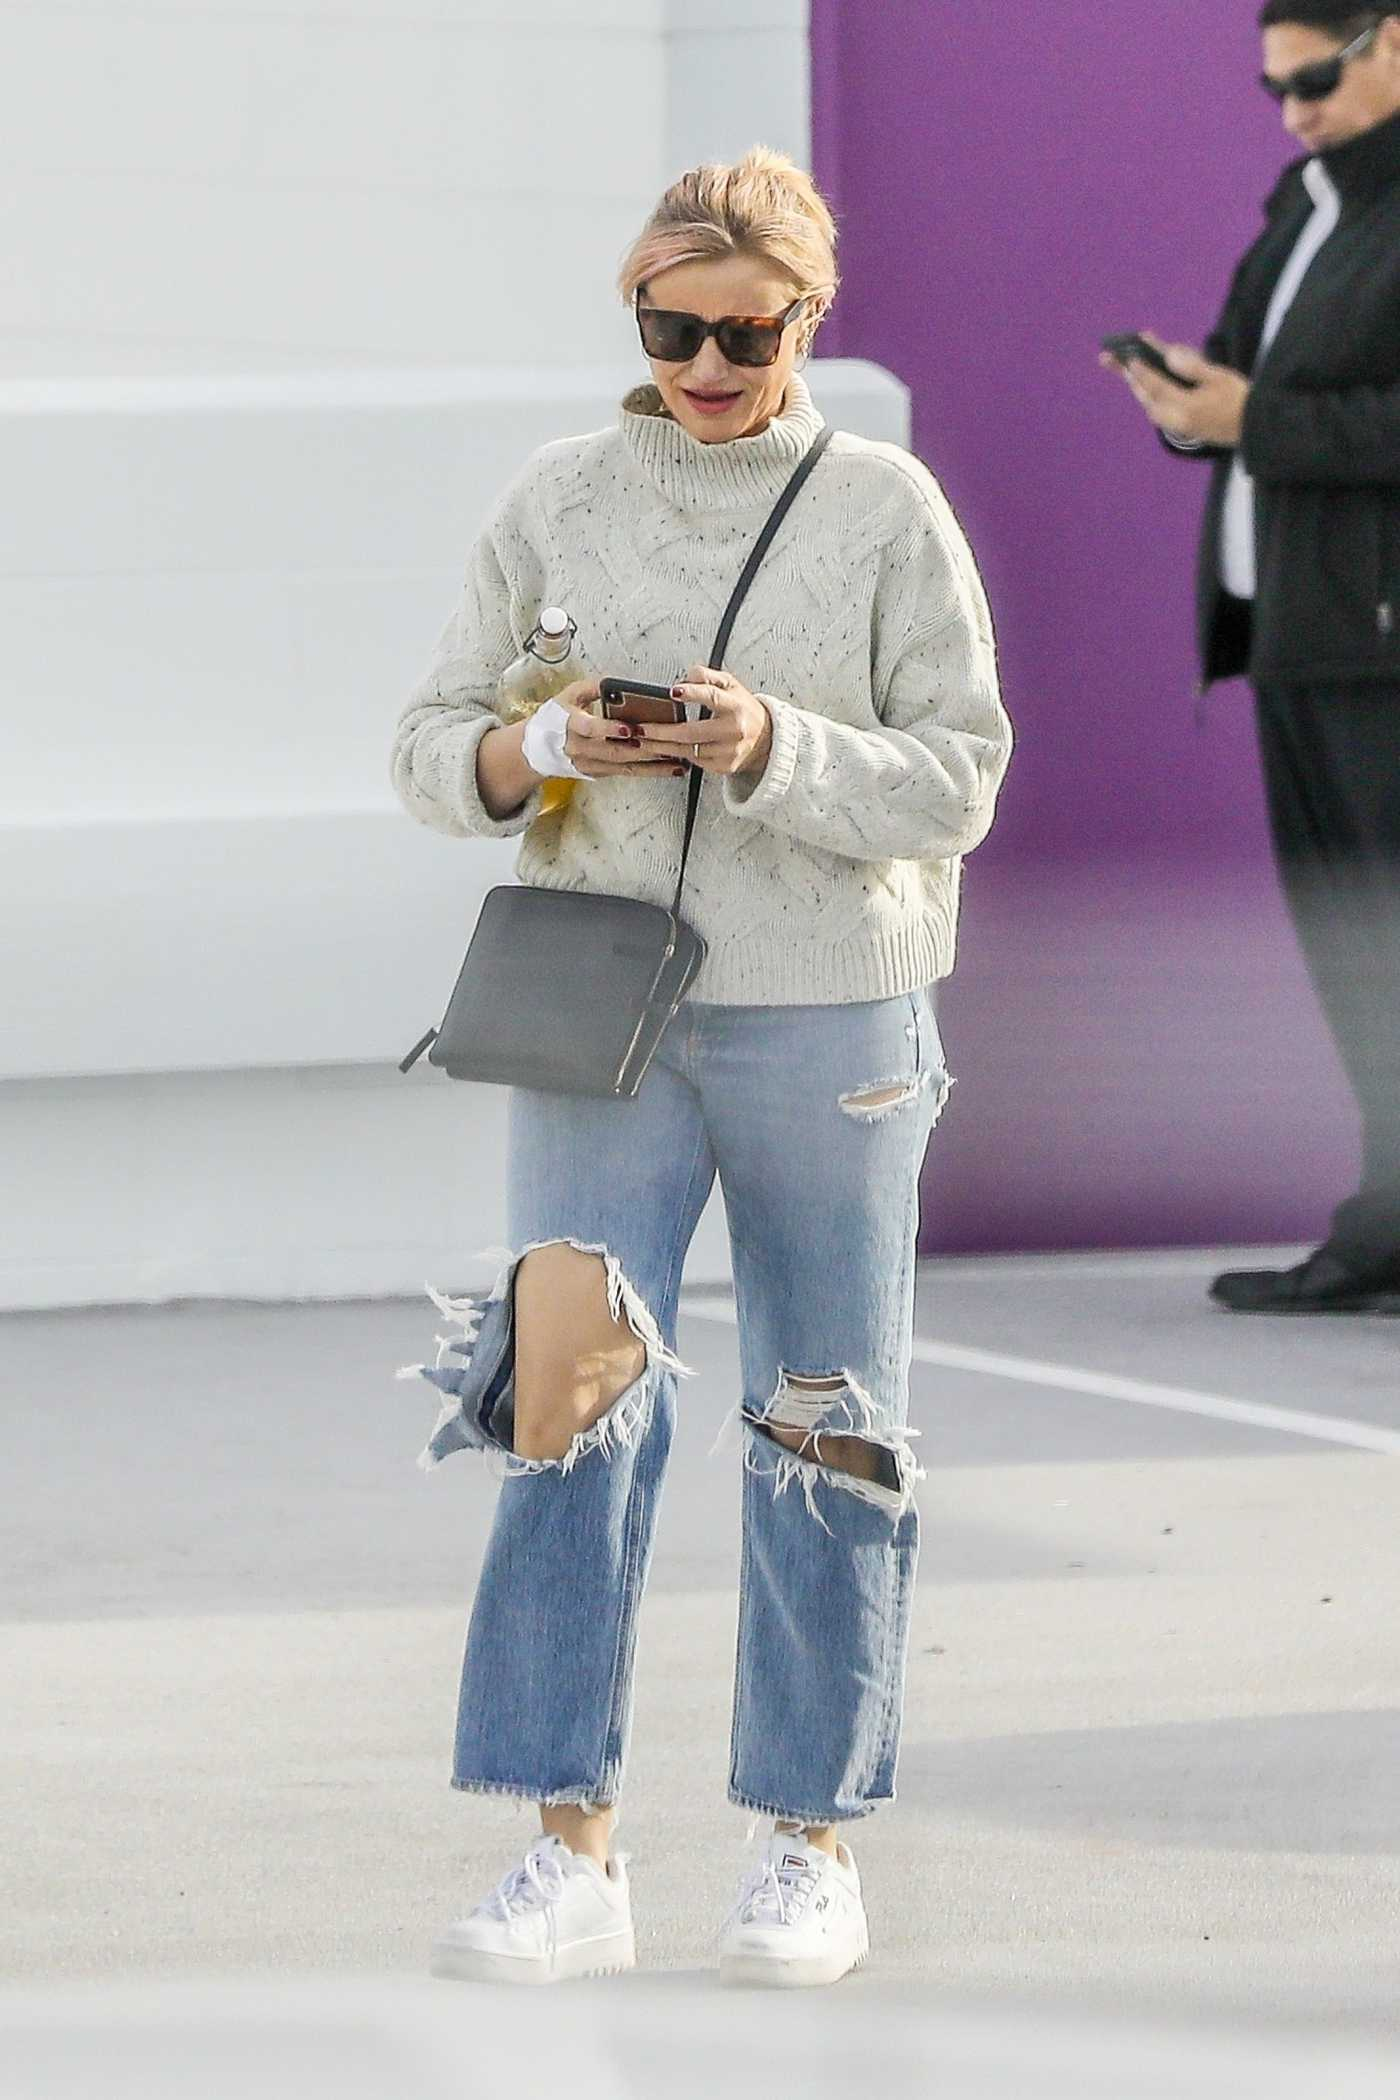 Cameron Diaz in a Blue Ripped Jeans Was Seen Out in Santa Monica 01/31/2020